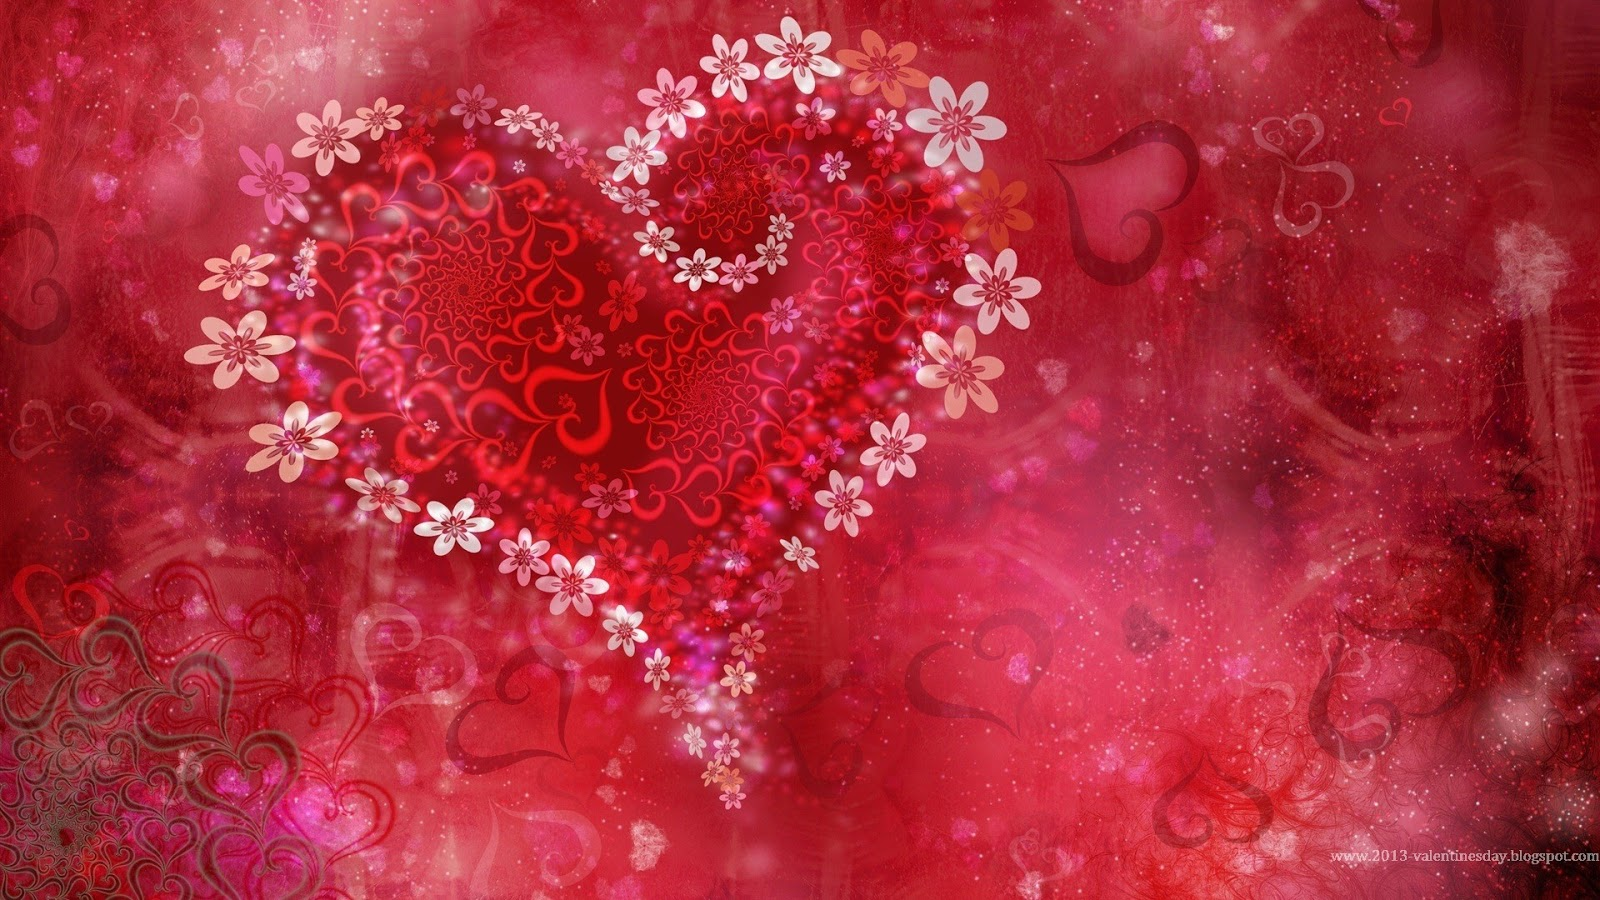 Valentines day hearts HD wallpapers 1024px and 1920px  Valentineu002639;s Day